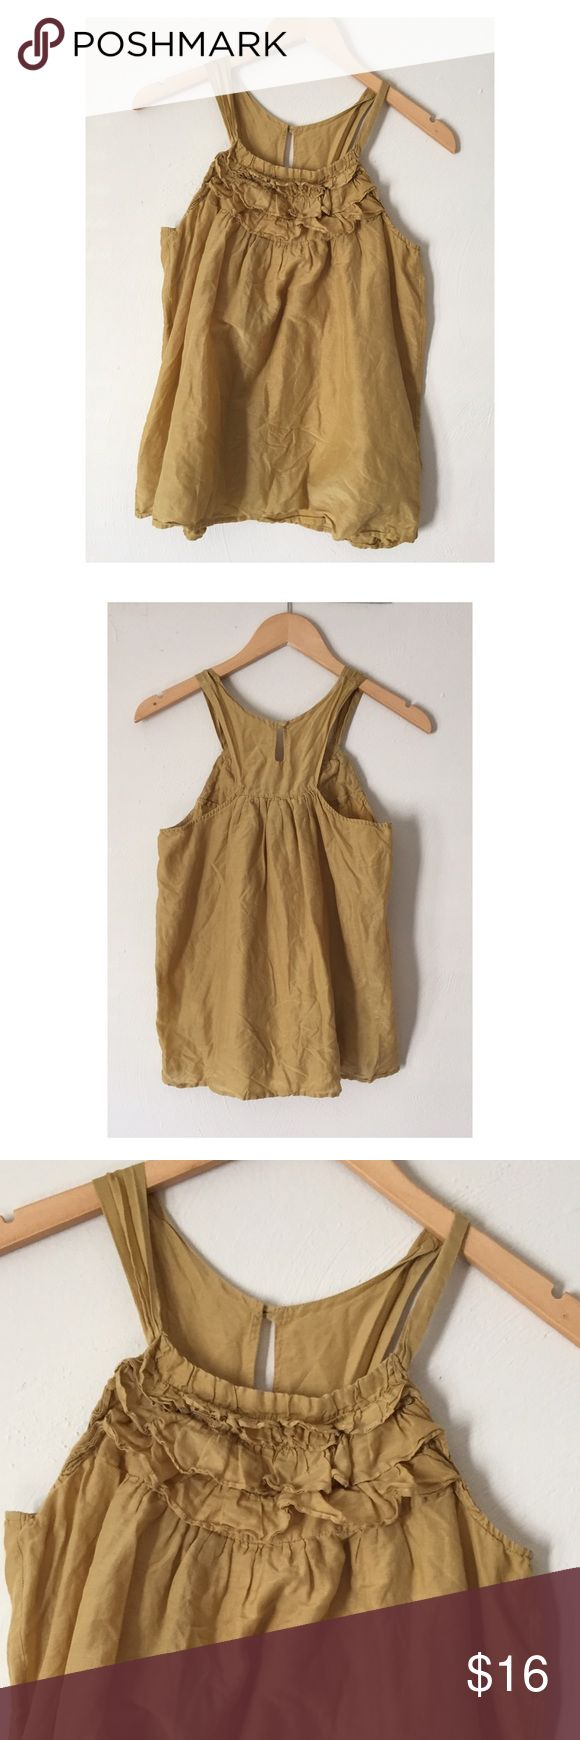 💄Jaloux silk blend gold smock top💄 By Jaloux -Gold colored smock style top -70% cotton/30% silk -Size M -Top of strap to bottom 24in. long/chest 15in. across -Boho style, matching underlay, keyhole back, ruffle top front, great condition Jaloux Tops Camisoles